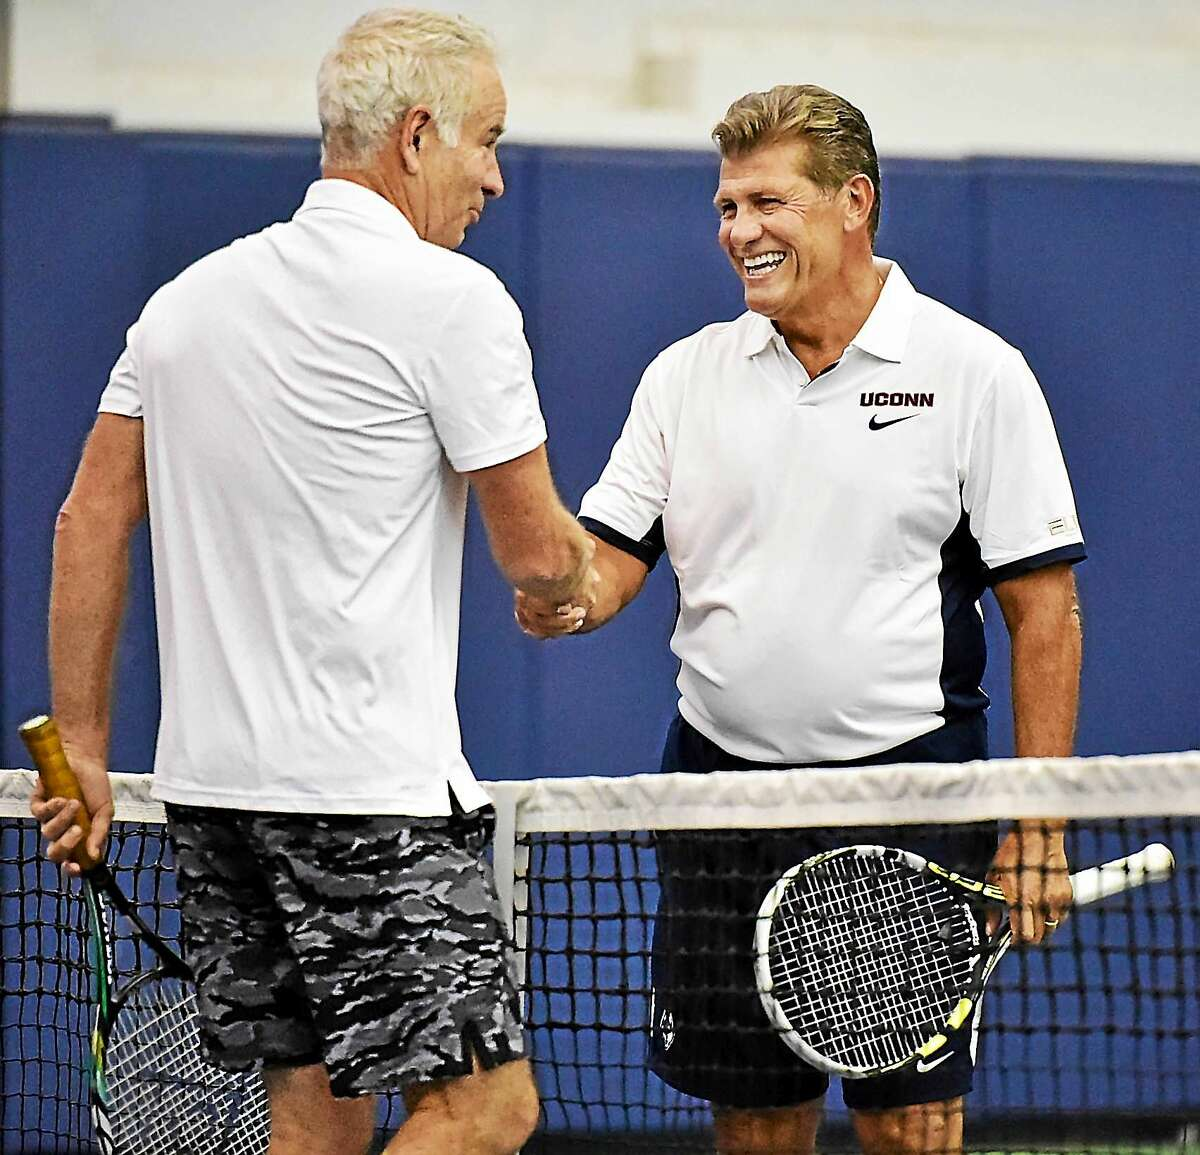 UConn women's basketball coach Geno Auriemma greets John McEnroe at the net following their match at the Cullman-Heyman Tennis Center at the Connecticut Open on Friday in New Haven.